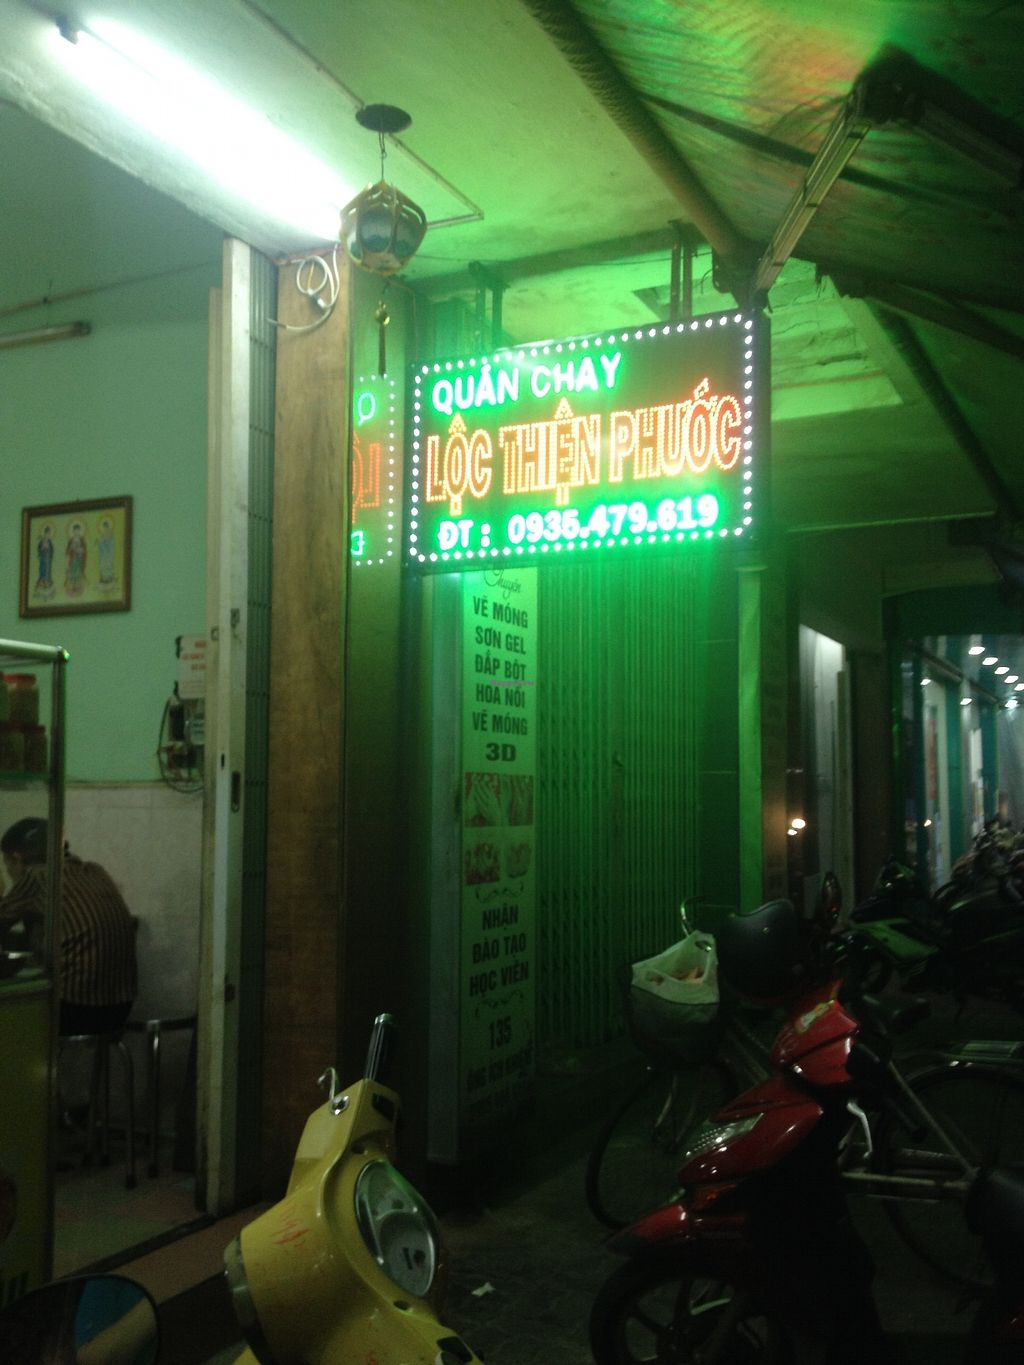 """Photo of Loc Thien Phuoc  by <a href=""""/members/profile/gamedev"""">gamedev</a> <br/>Front of restaurant <br/> August 21, 2017  - <a href='/contact/abuse/image/98671/295134'>Report</a>"""